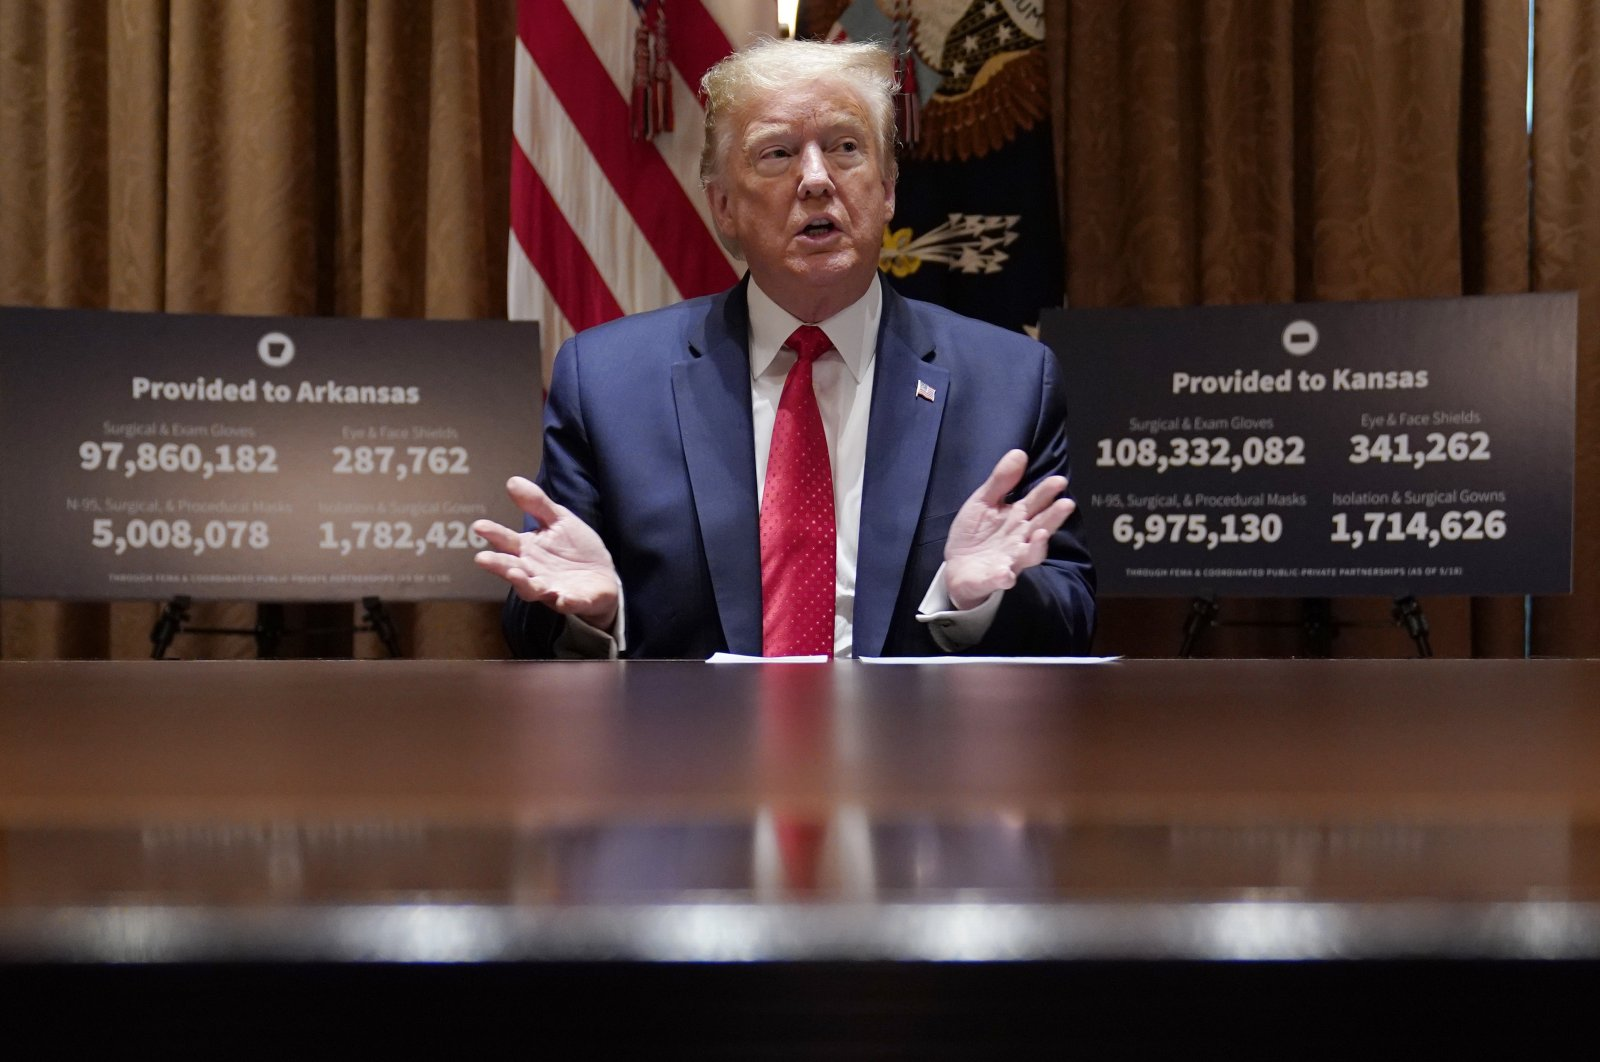 U.S. President Donald Trump speaks during a meeting with Arkansas Gov. Asa Hutchinson and Kansas Gov. Laura Kelly in the Cabinet Room of the White House, Wednesday, May 20, 2020, in Washington. (AP Photo)